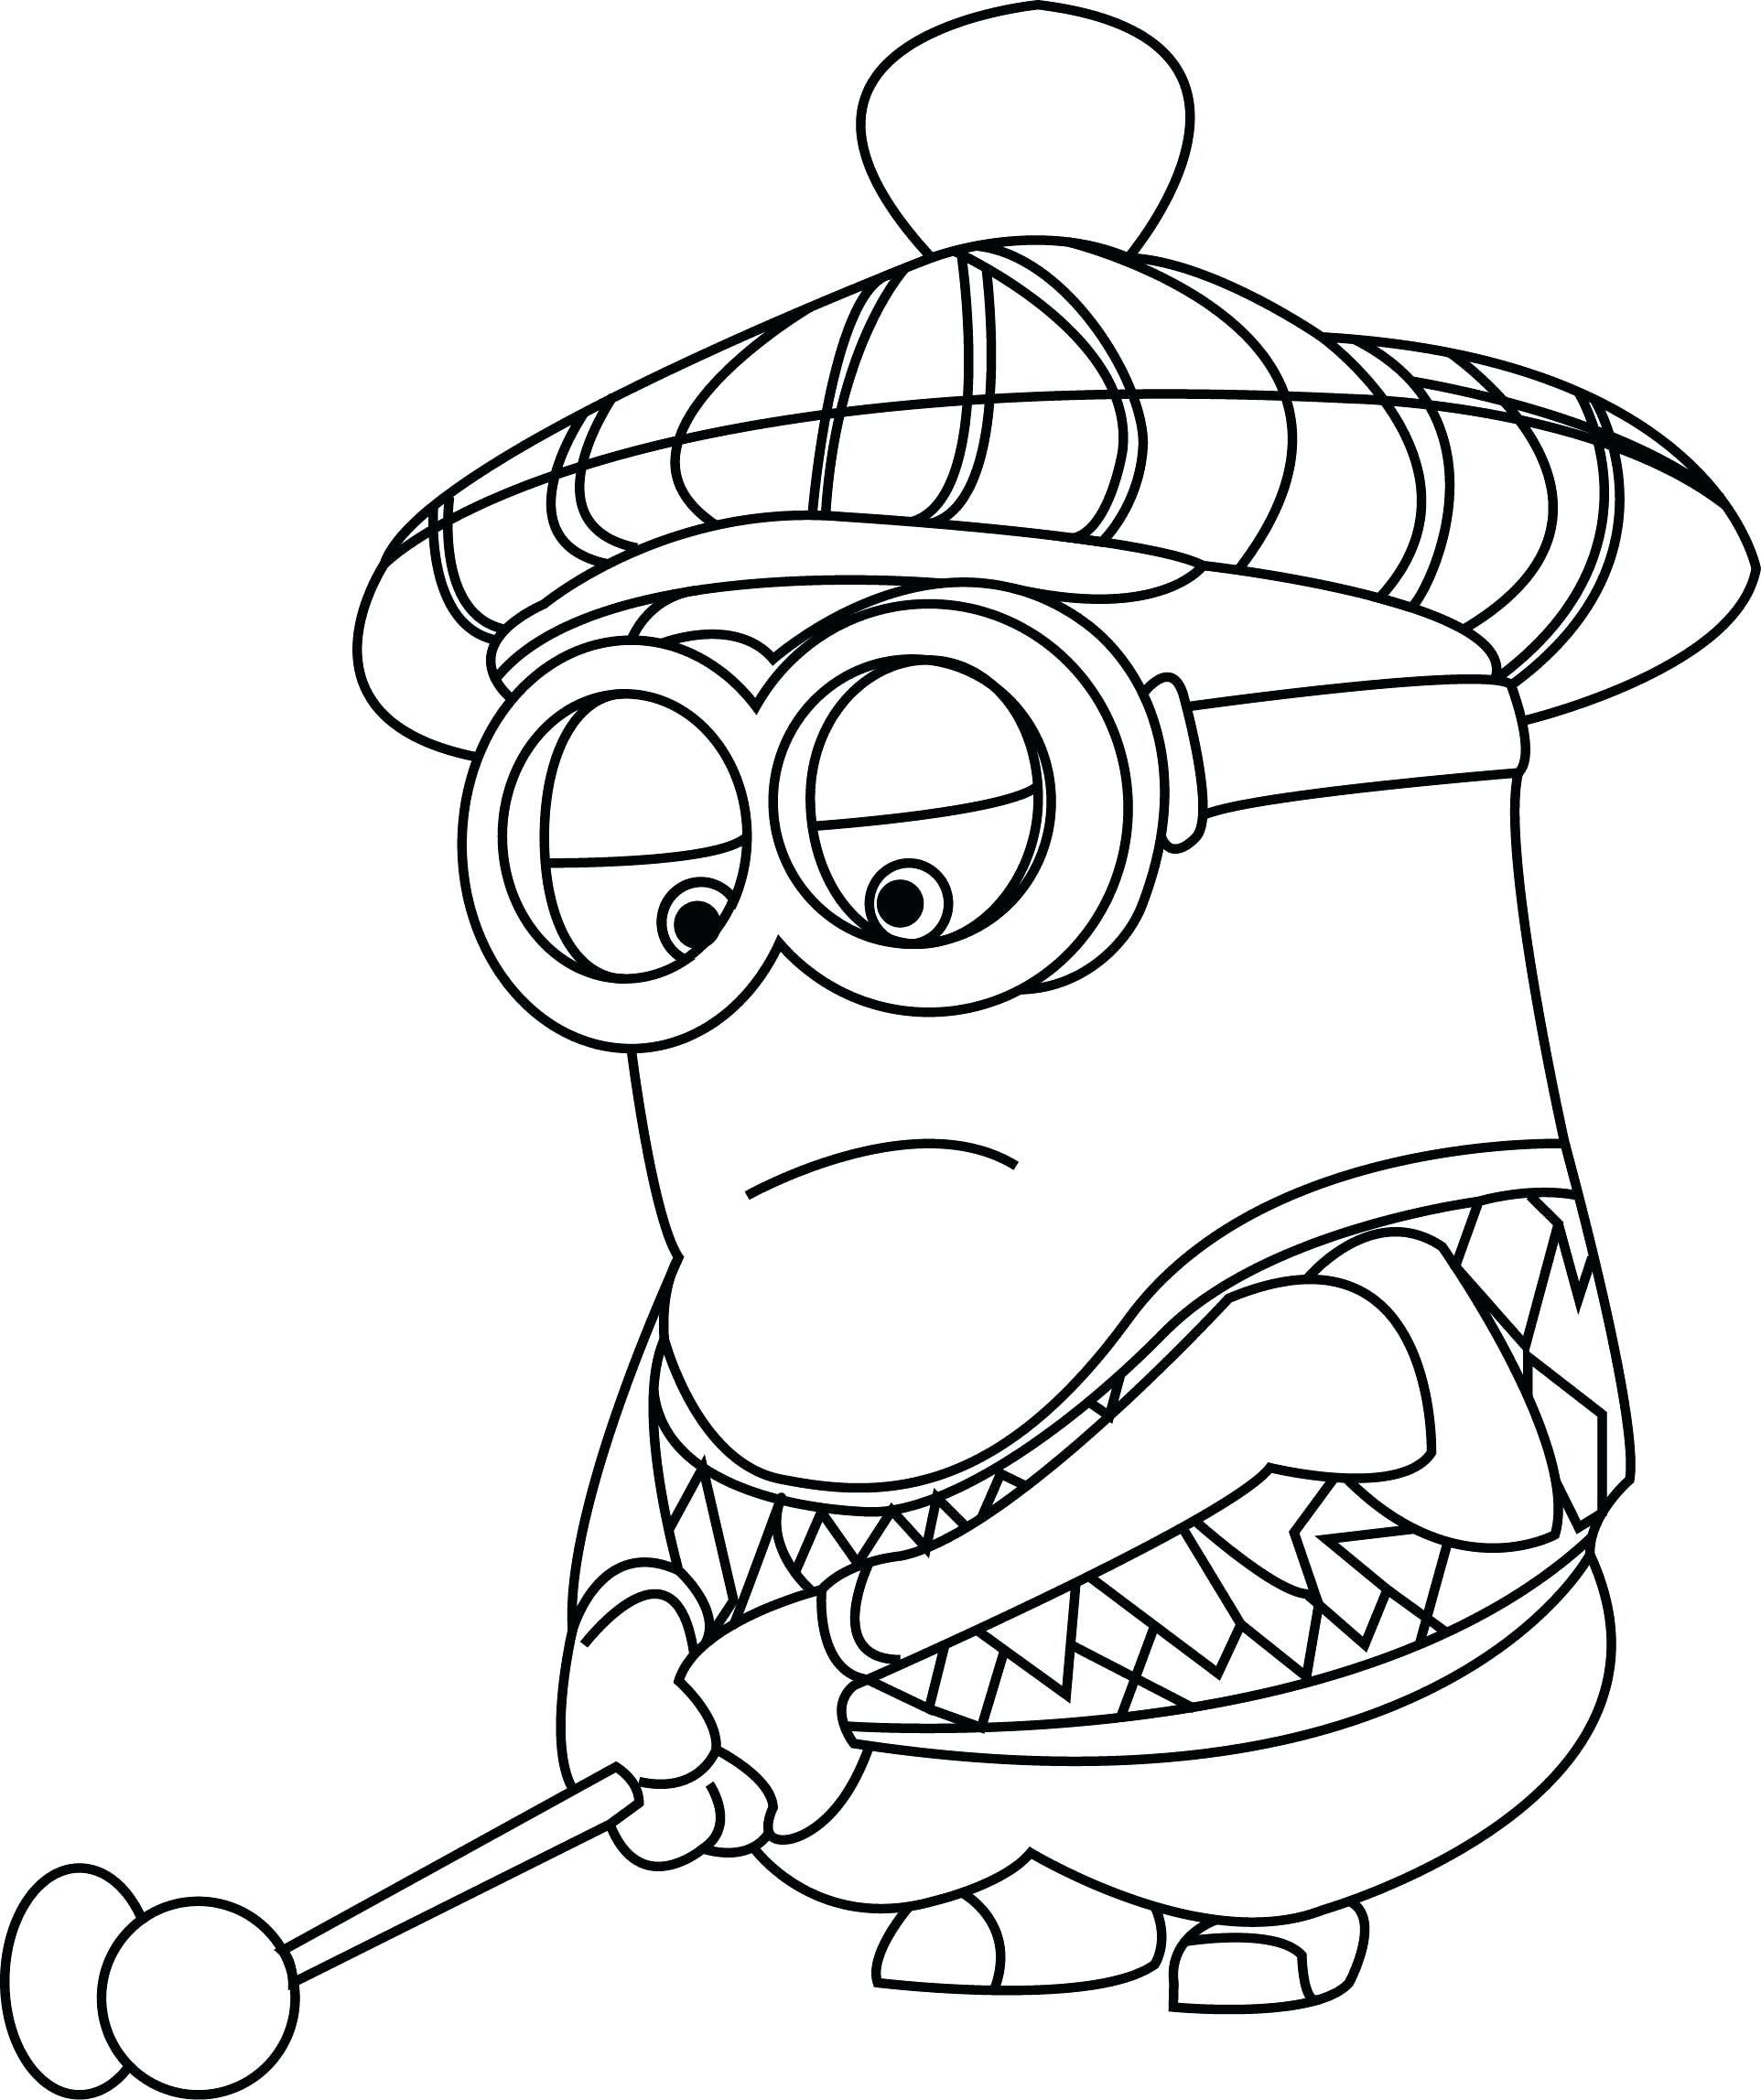 Bob The Builder Coloring Pages Fresh Of Coloring Pages From Minions Bob Sabadaphnecottage In 2020 Minion Coloring Pages Sports Coloring Pages Minions Coloring Pages